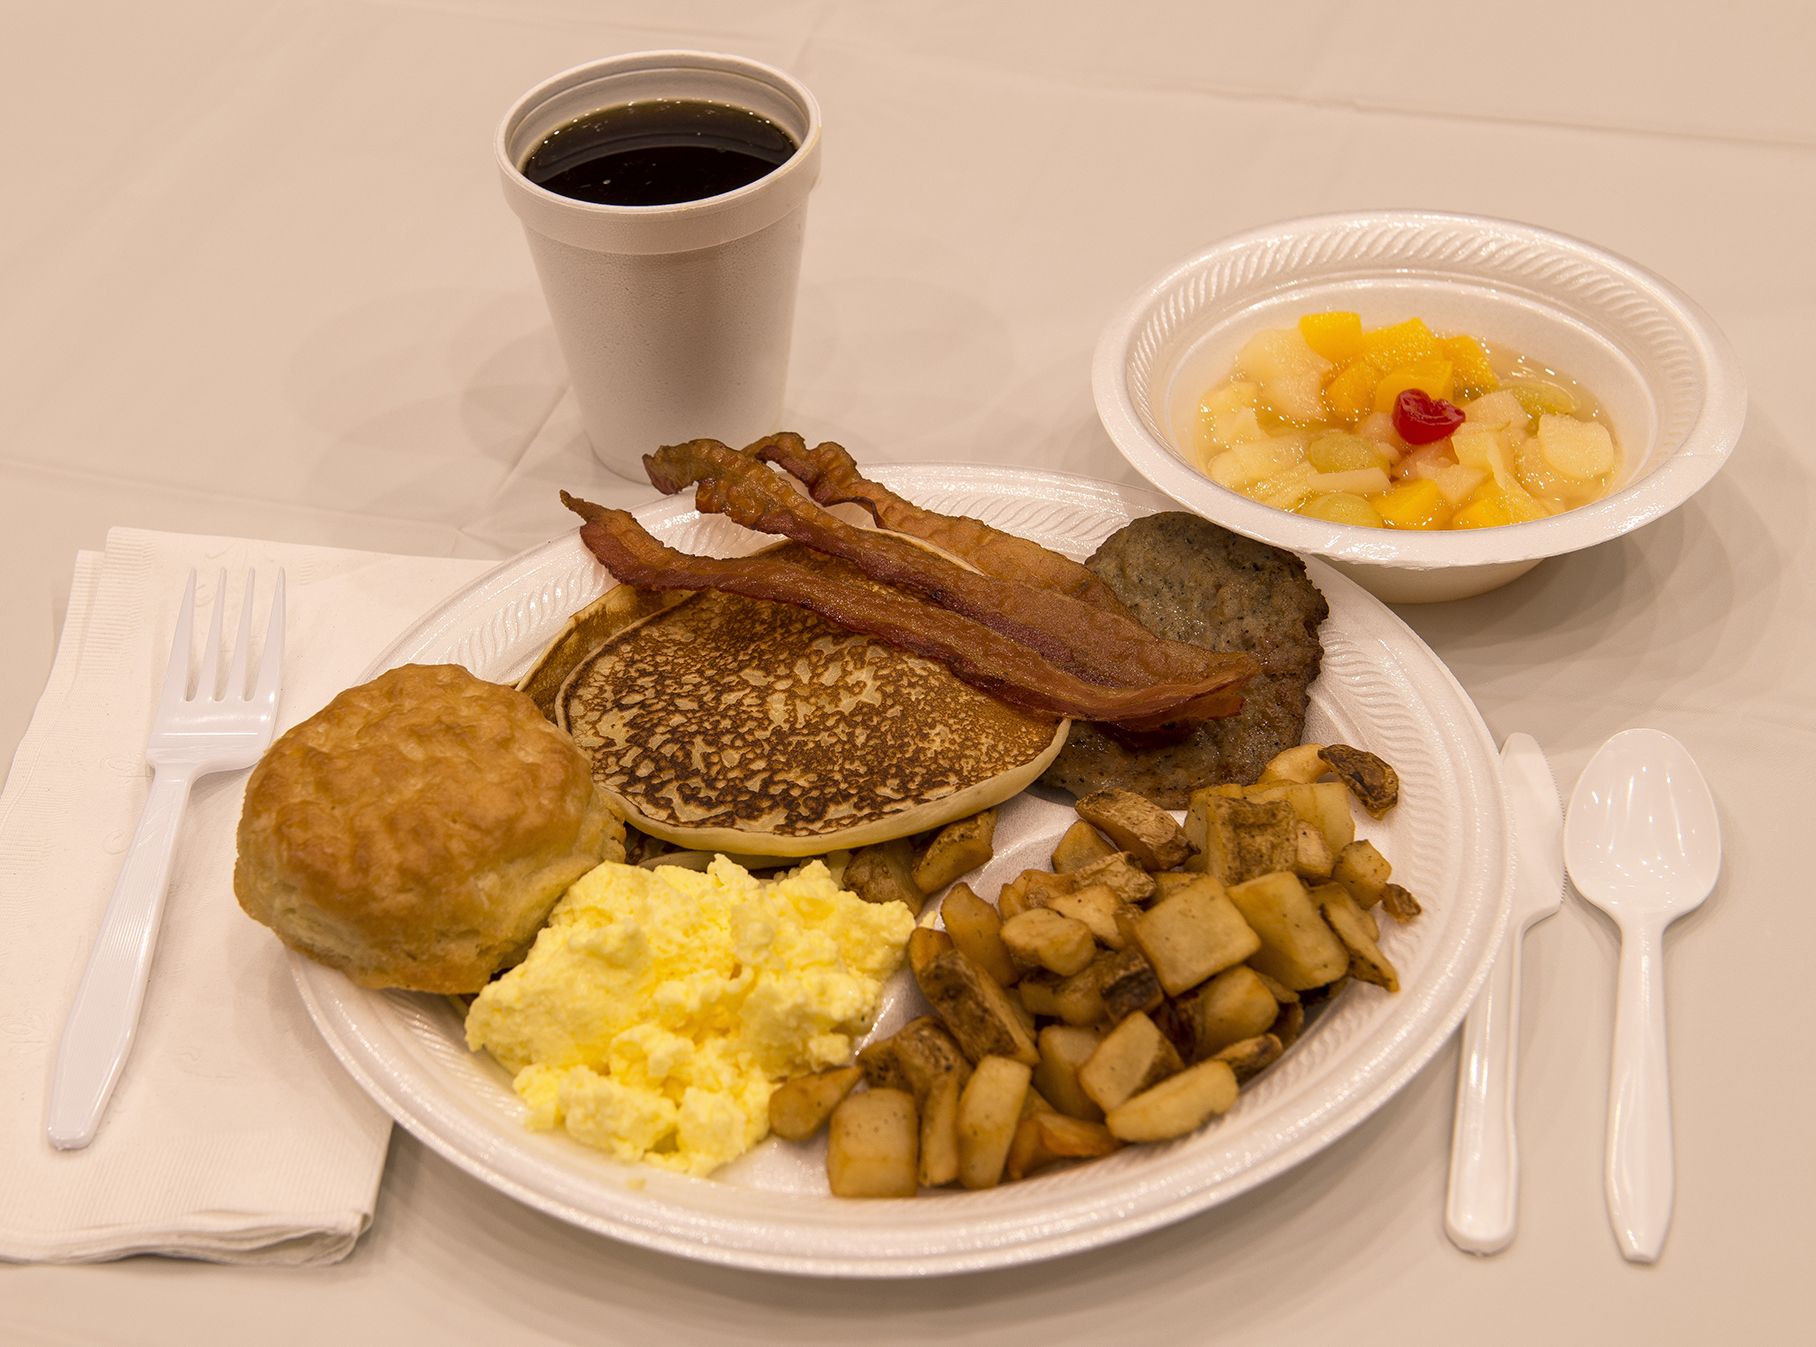 MOHF Pancake Breakfast Meal